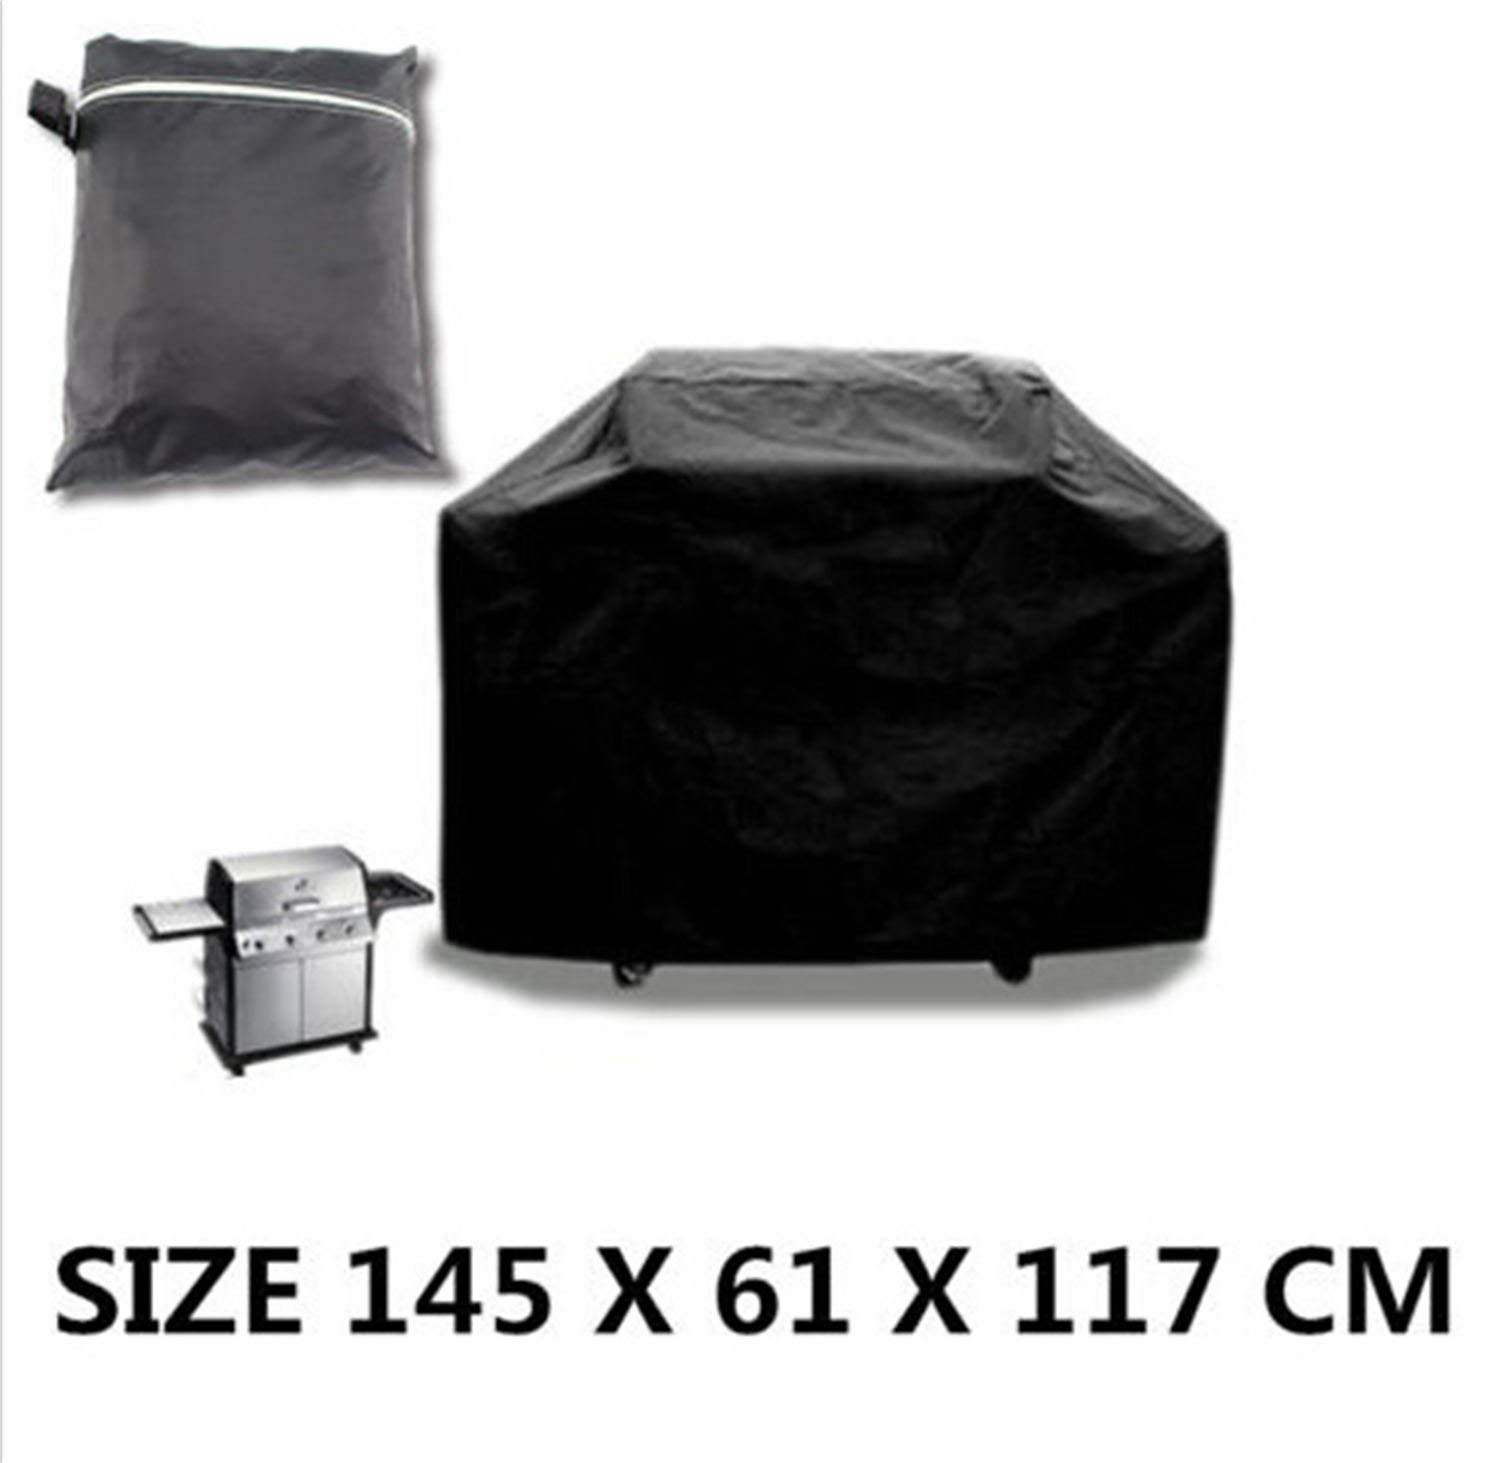 """Skyee BBQ Grill Cover Up to 57"""" Wide, Water Resistant, Air Vents, Padded Handles, Elastic Hem Cord-Outdoor Gas Grill Cover Barbecue Grill Covers with UV Protection Grill Cover, Black"""